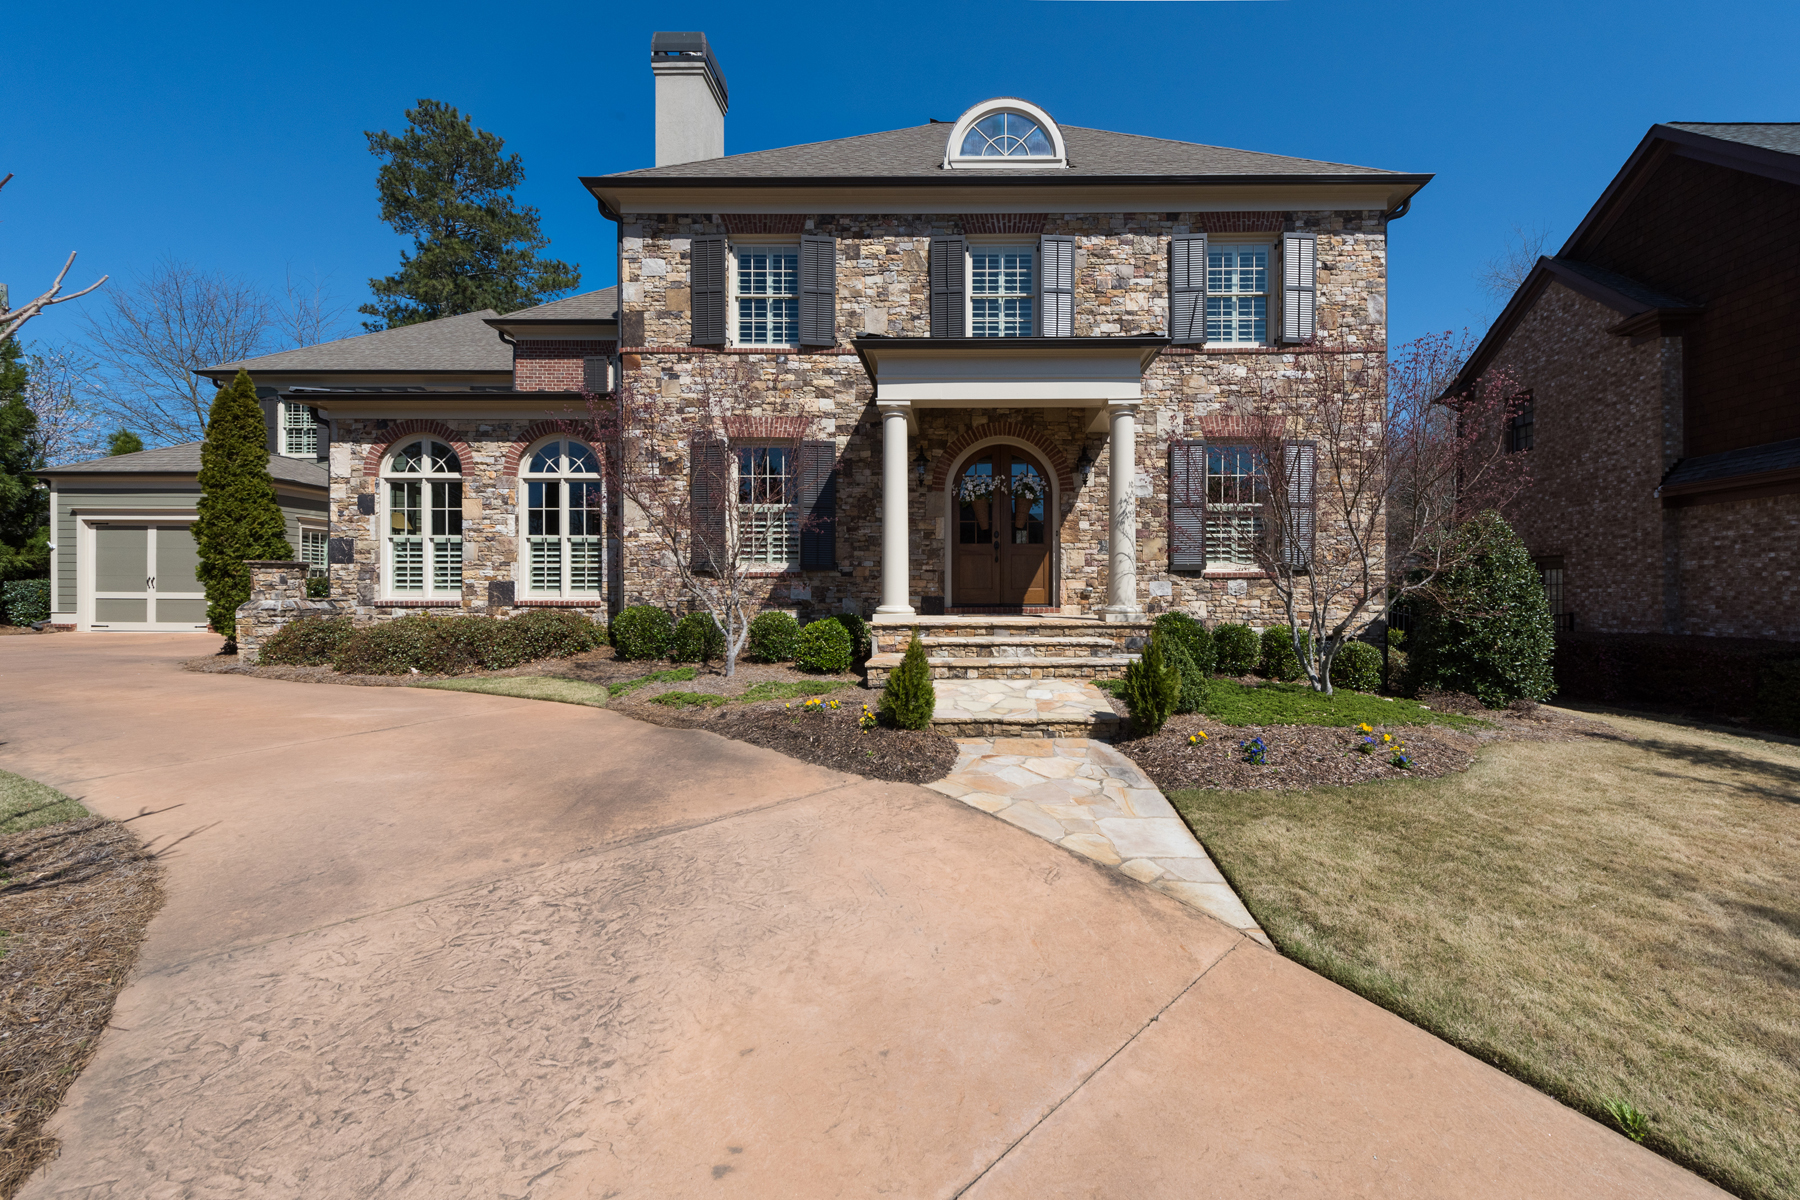 Single Family Home for Sale at Exquisite Residence In Gated Community Minutes From Historic Roswell 1005 Stonegrove Ln Roswell, Georgia 30075 United States